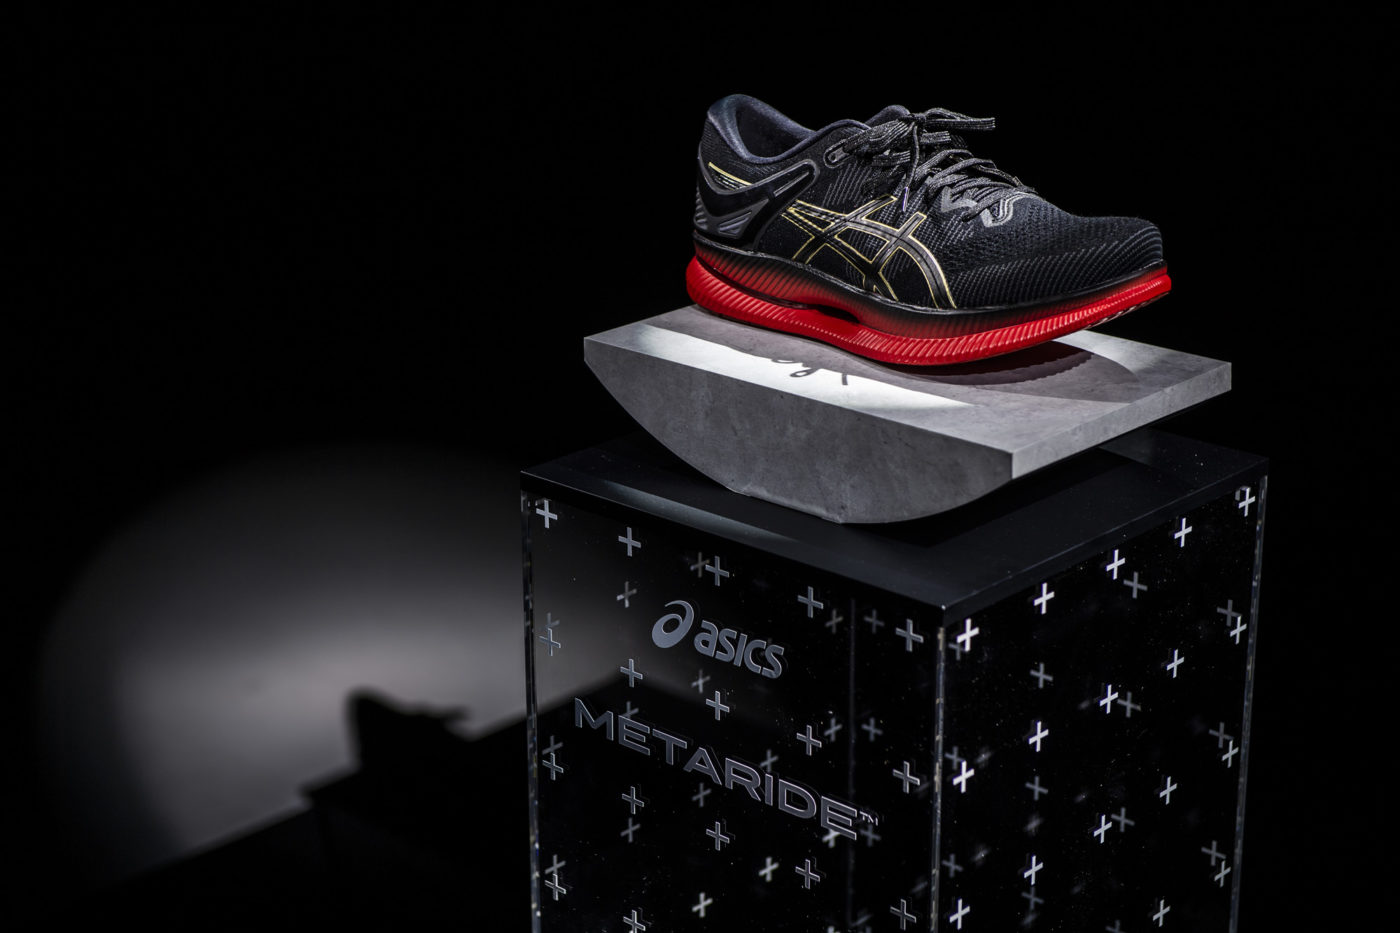 chaussures-course-a-pied-asics-metaride-4